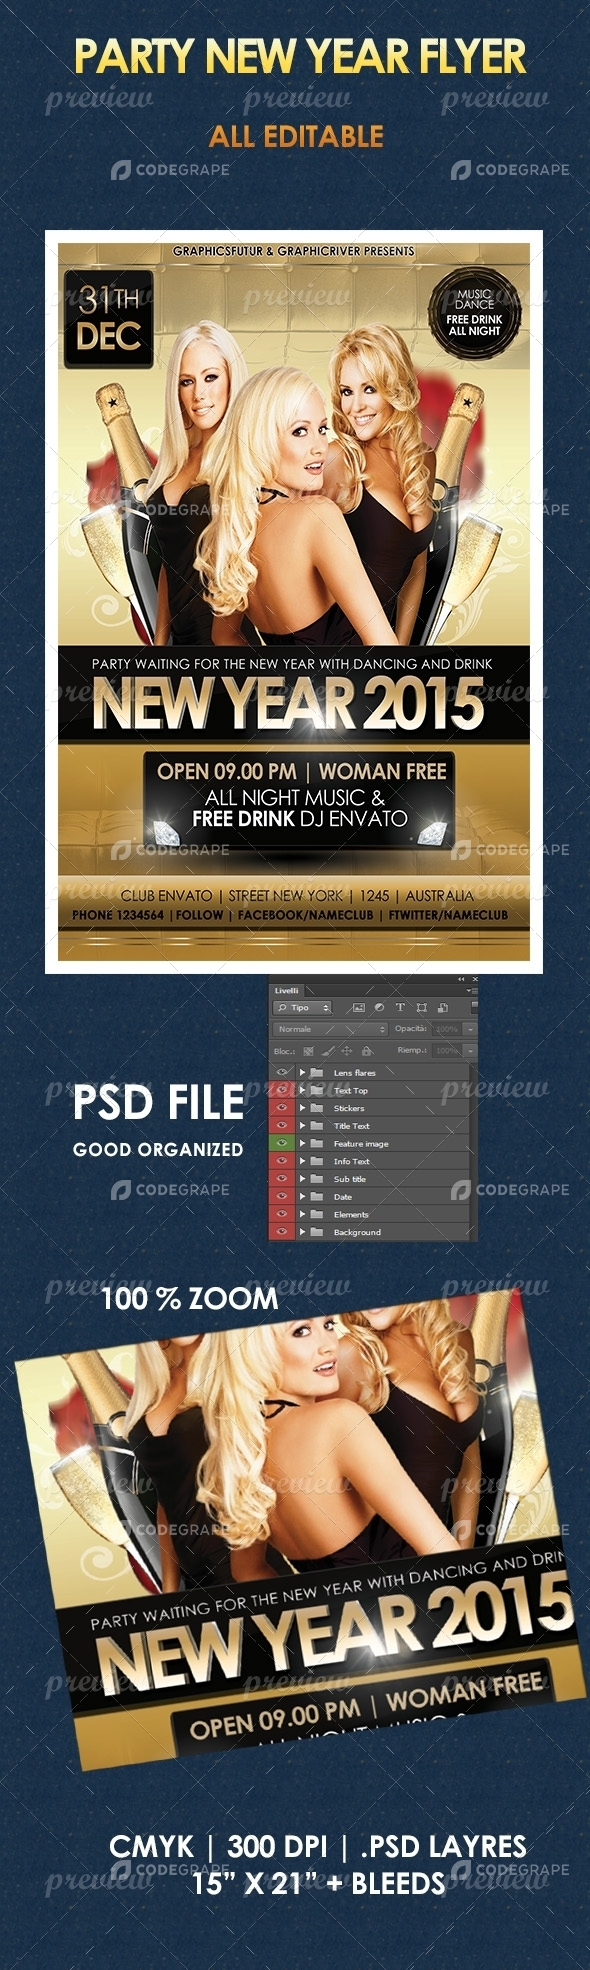 Party New Year Flyer